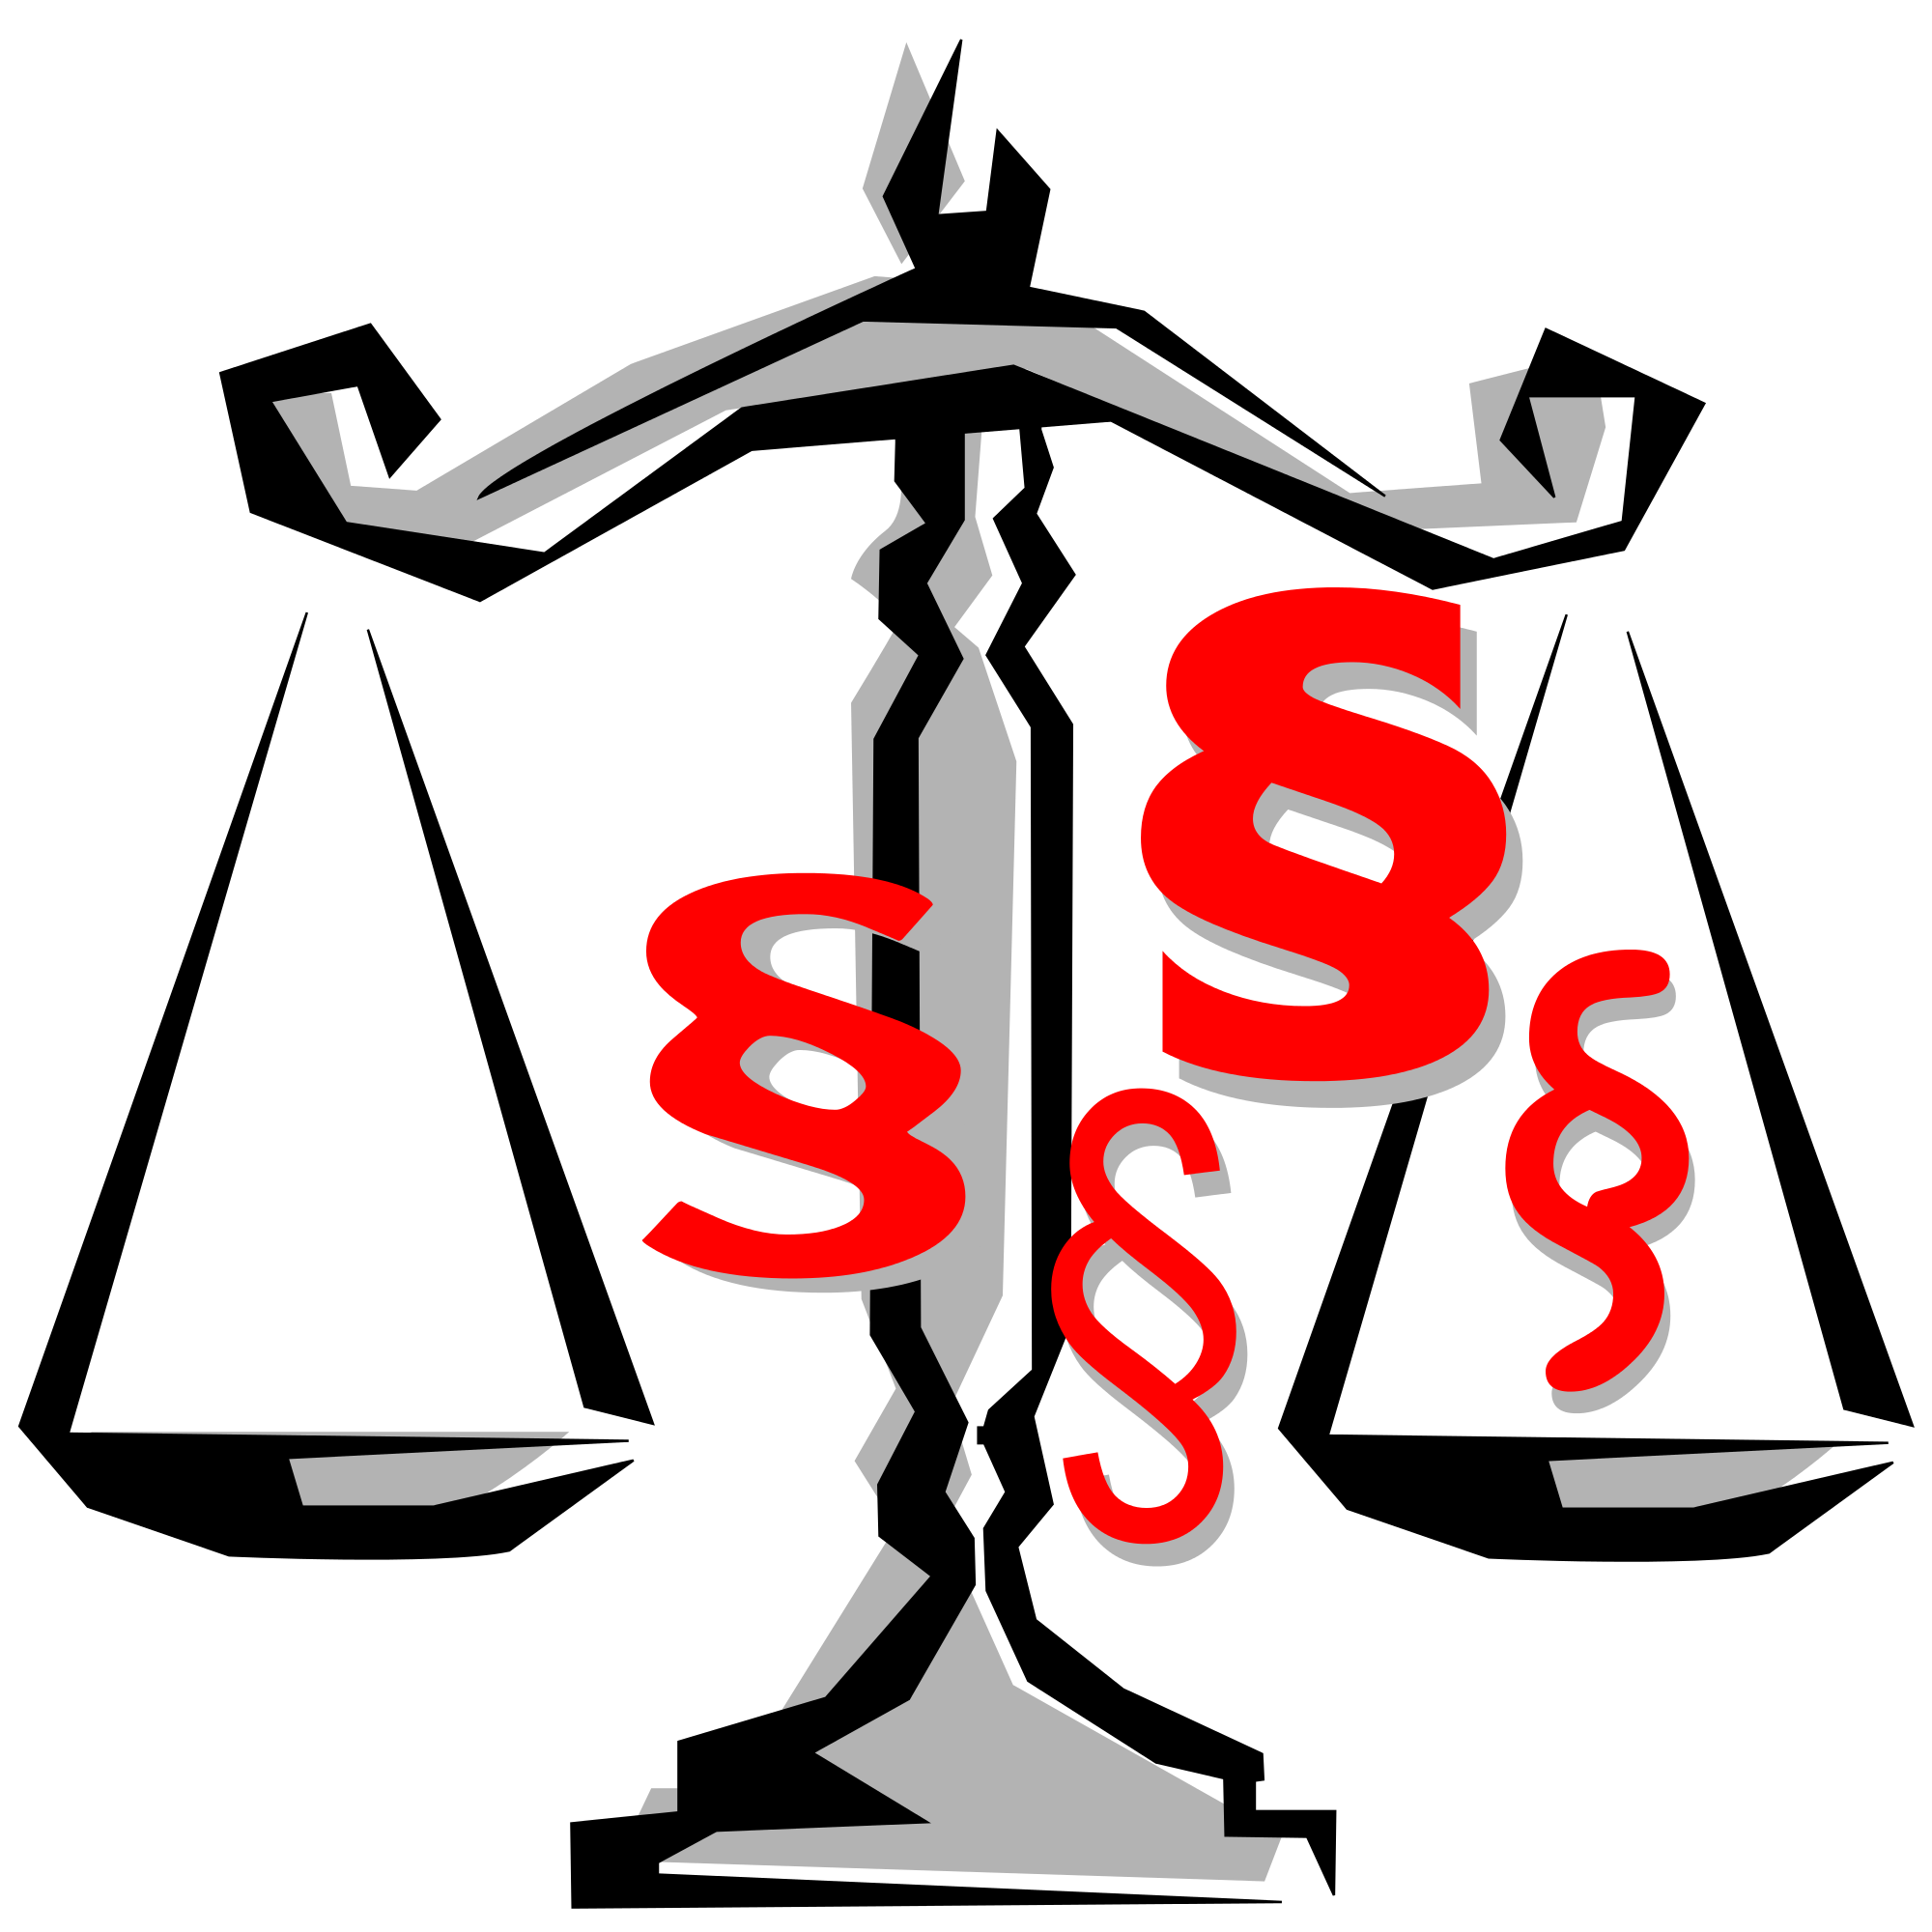 Justice clipart svg. File and law wikimedia